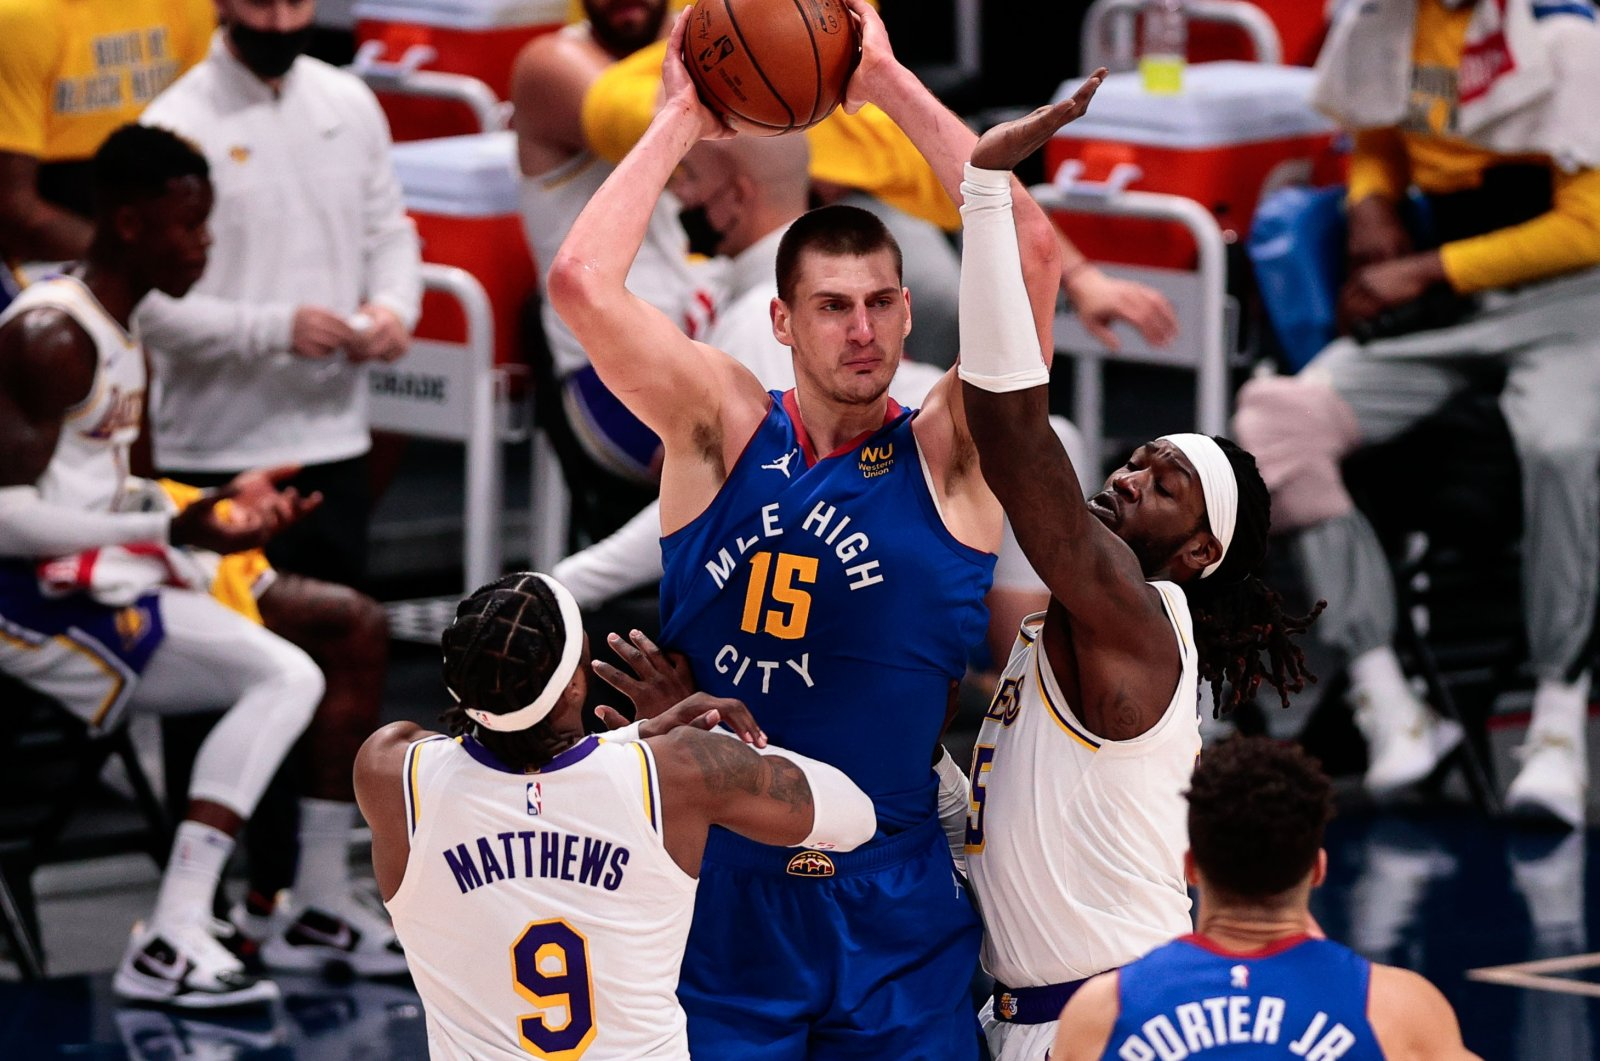 Denver Nuggets center Nikola Jokic (C) looks to pass the ball under pressure from Los Angeles Lakers guard Wesley Matthews (L) and center Montrezl Harrell (R) in the third quarter at Ball Arena, Denver, Colorado, Feb 14, 2021. (Reuters Photo)